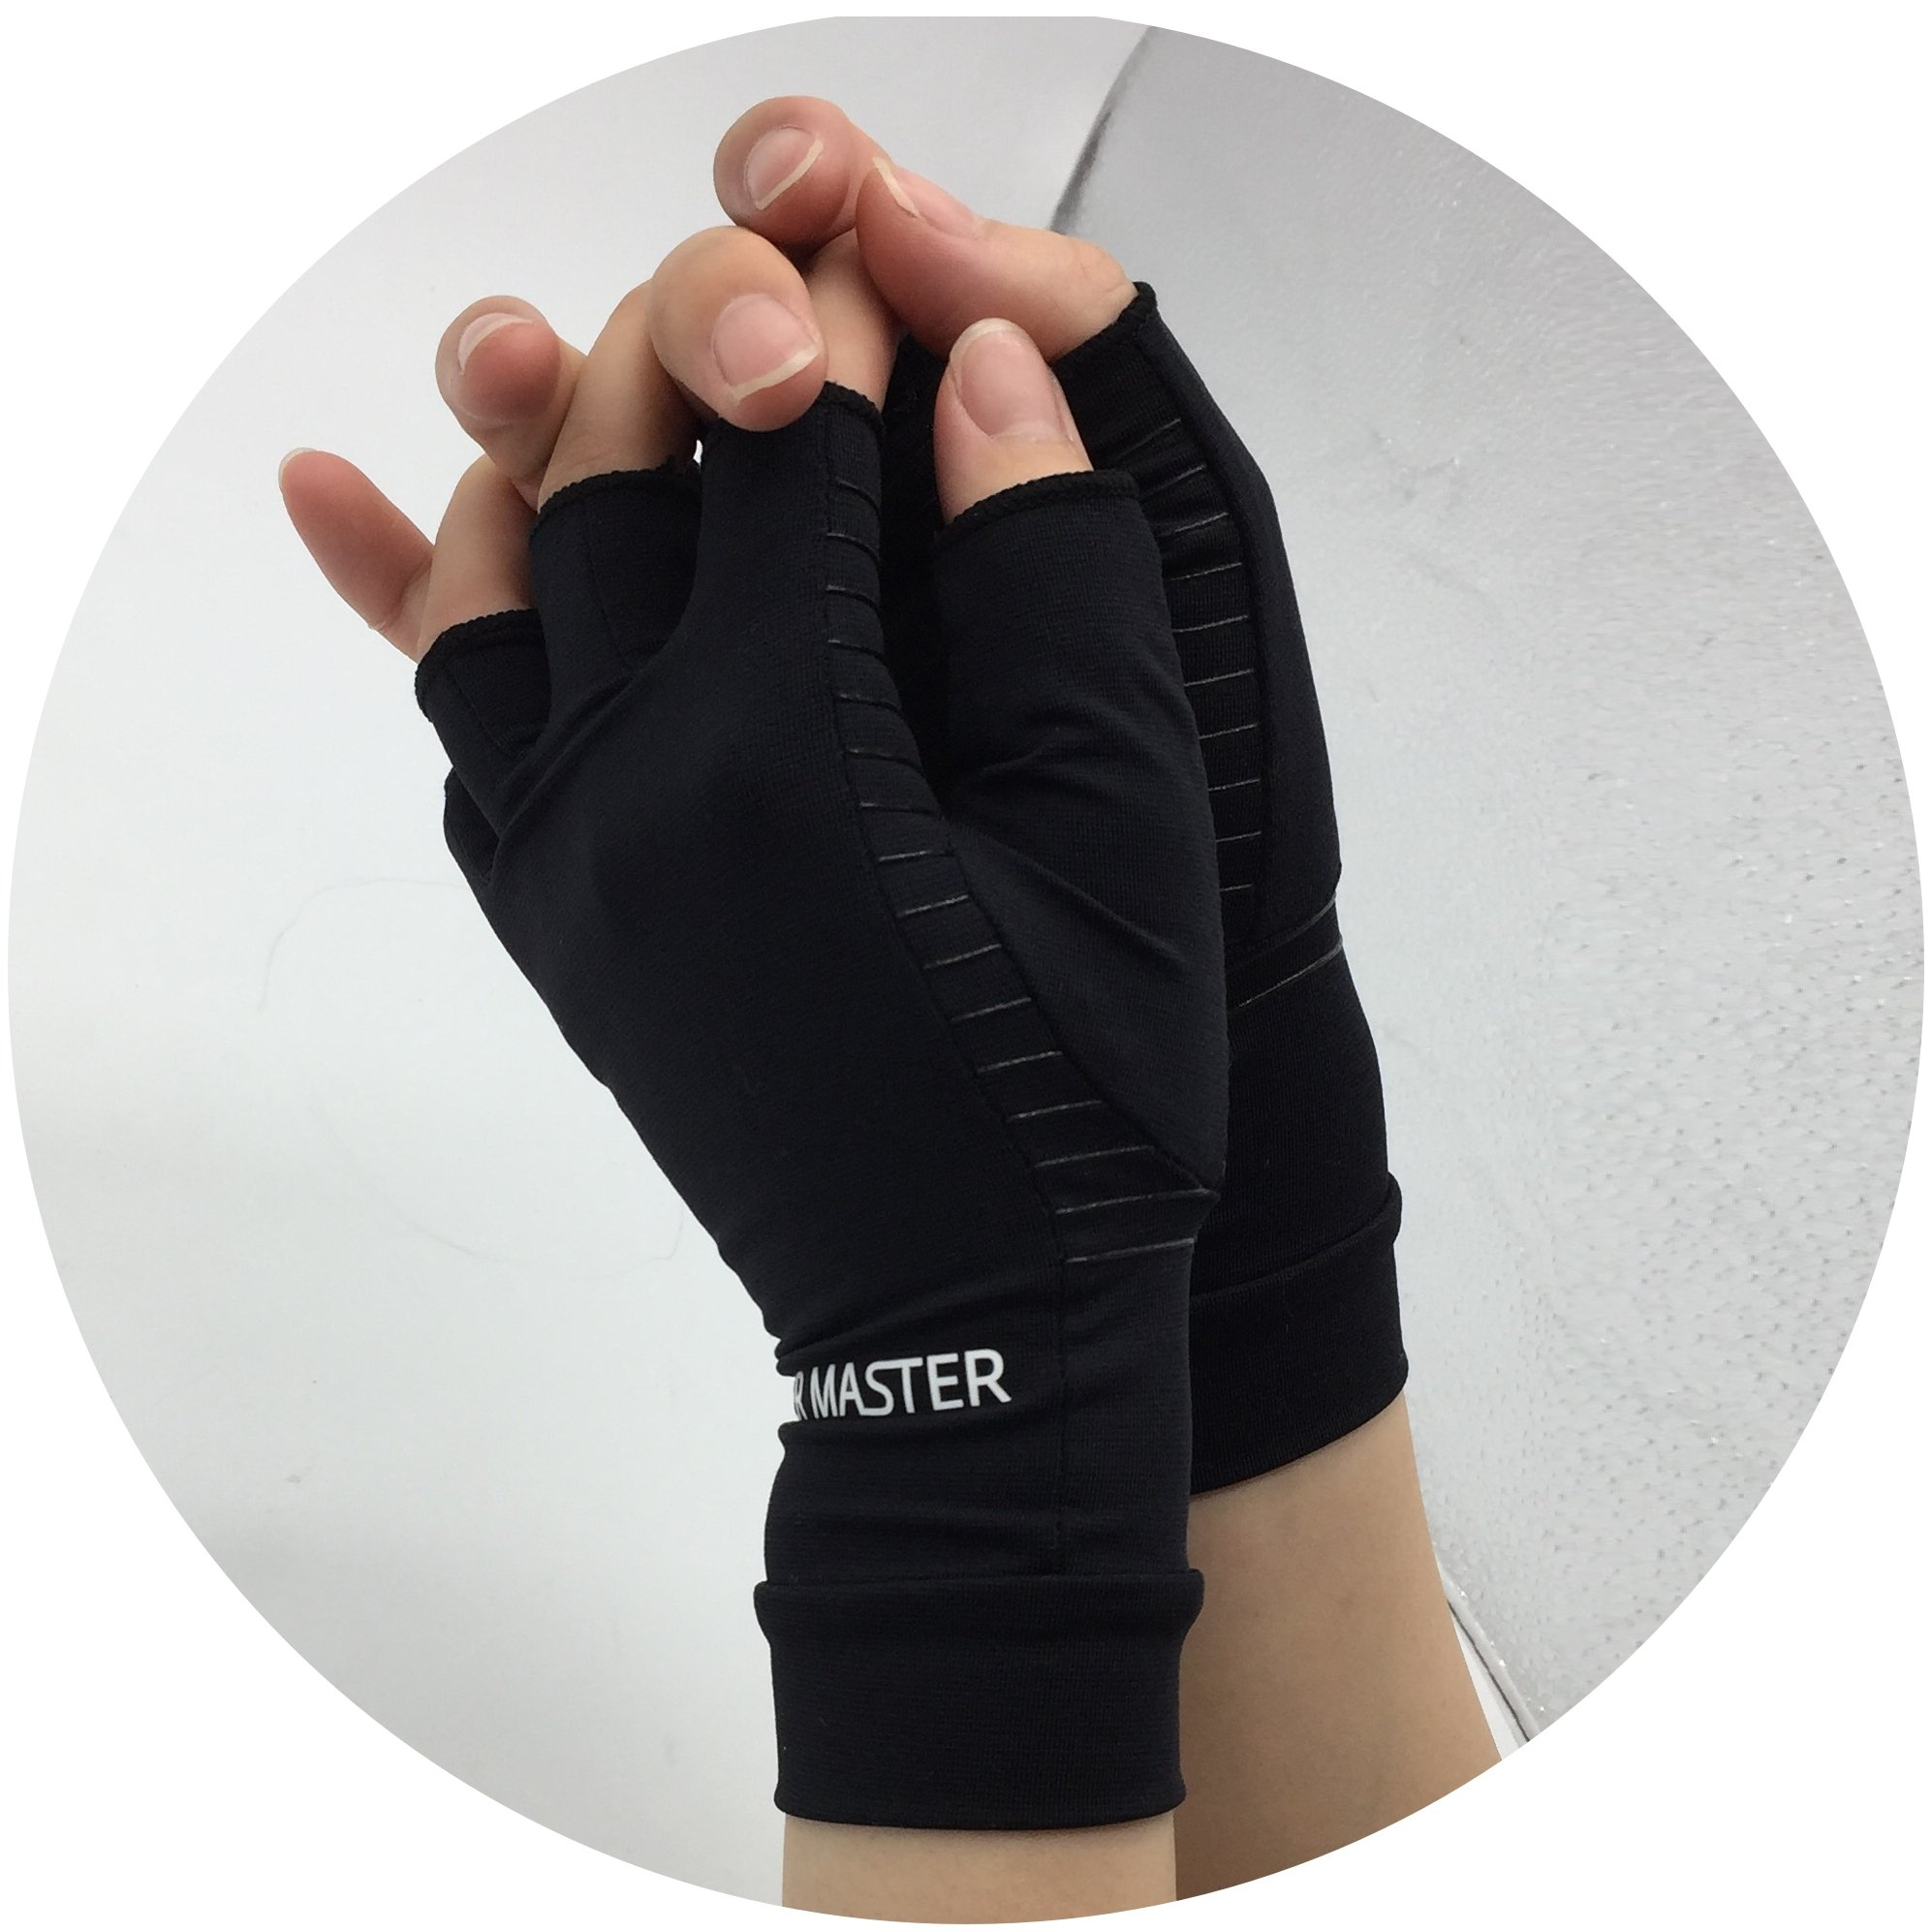 Arthritis Gloves Women- Copper Gloves For Men- Compression Gloves Recovery & Relieve For Arthritis, RSI, Carpal Tunnel, Swollen Hands, Tendonitis, Everyday Support & More- Fingerless Gloves/ Black/ L by Highcamp (Image #8)